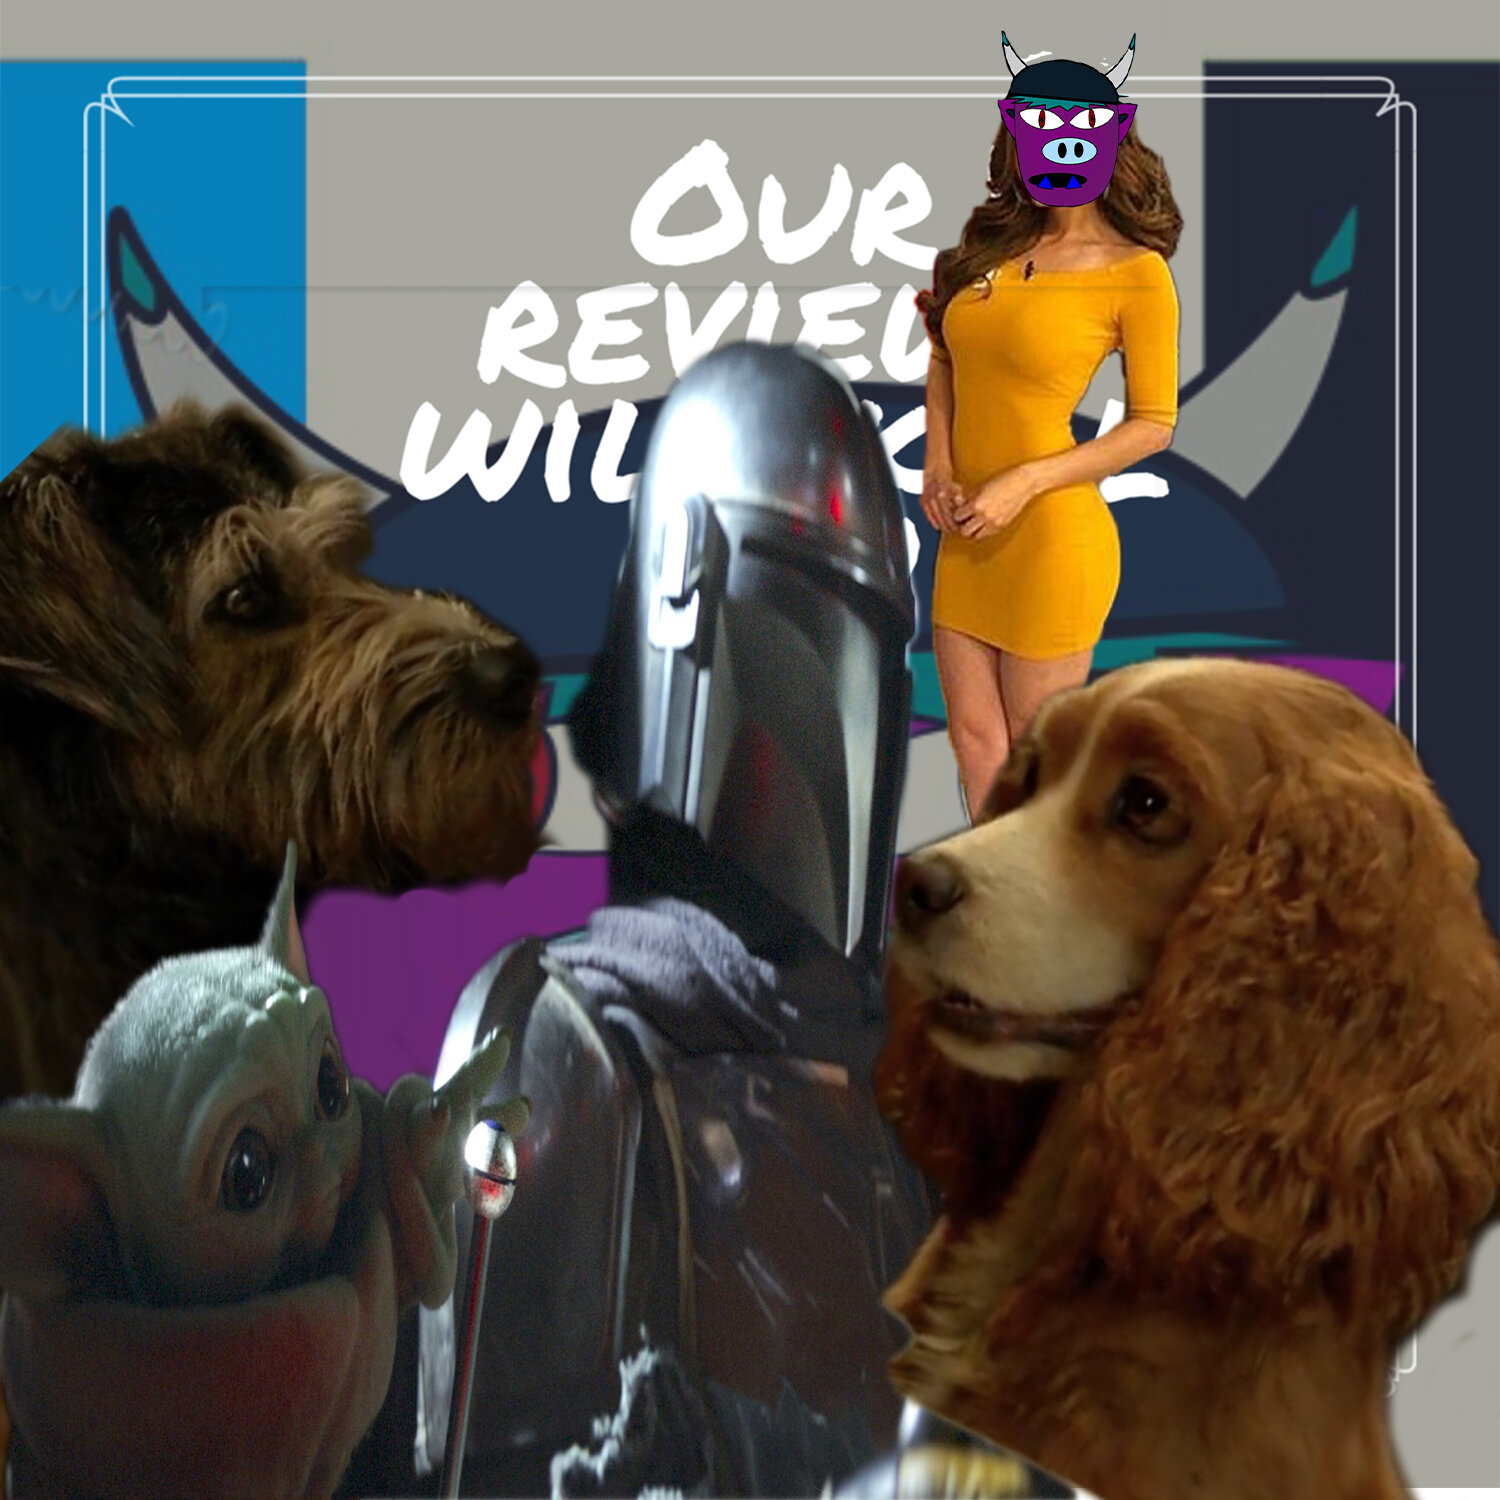 Orku Reviews Lady And The Tramp Last Christmas Mandalorian Baby Yoda Watchmen And South Park Keebler Media